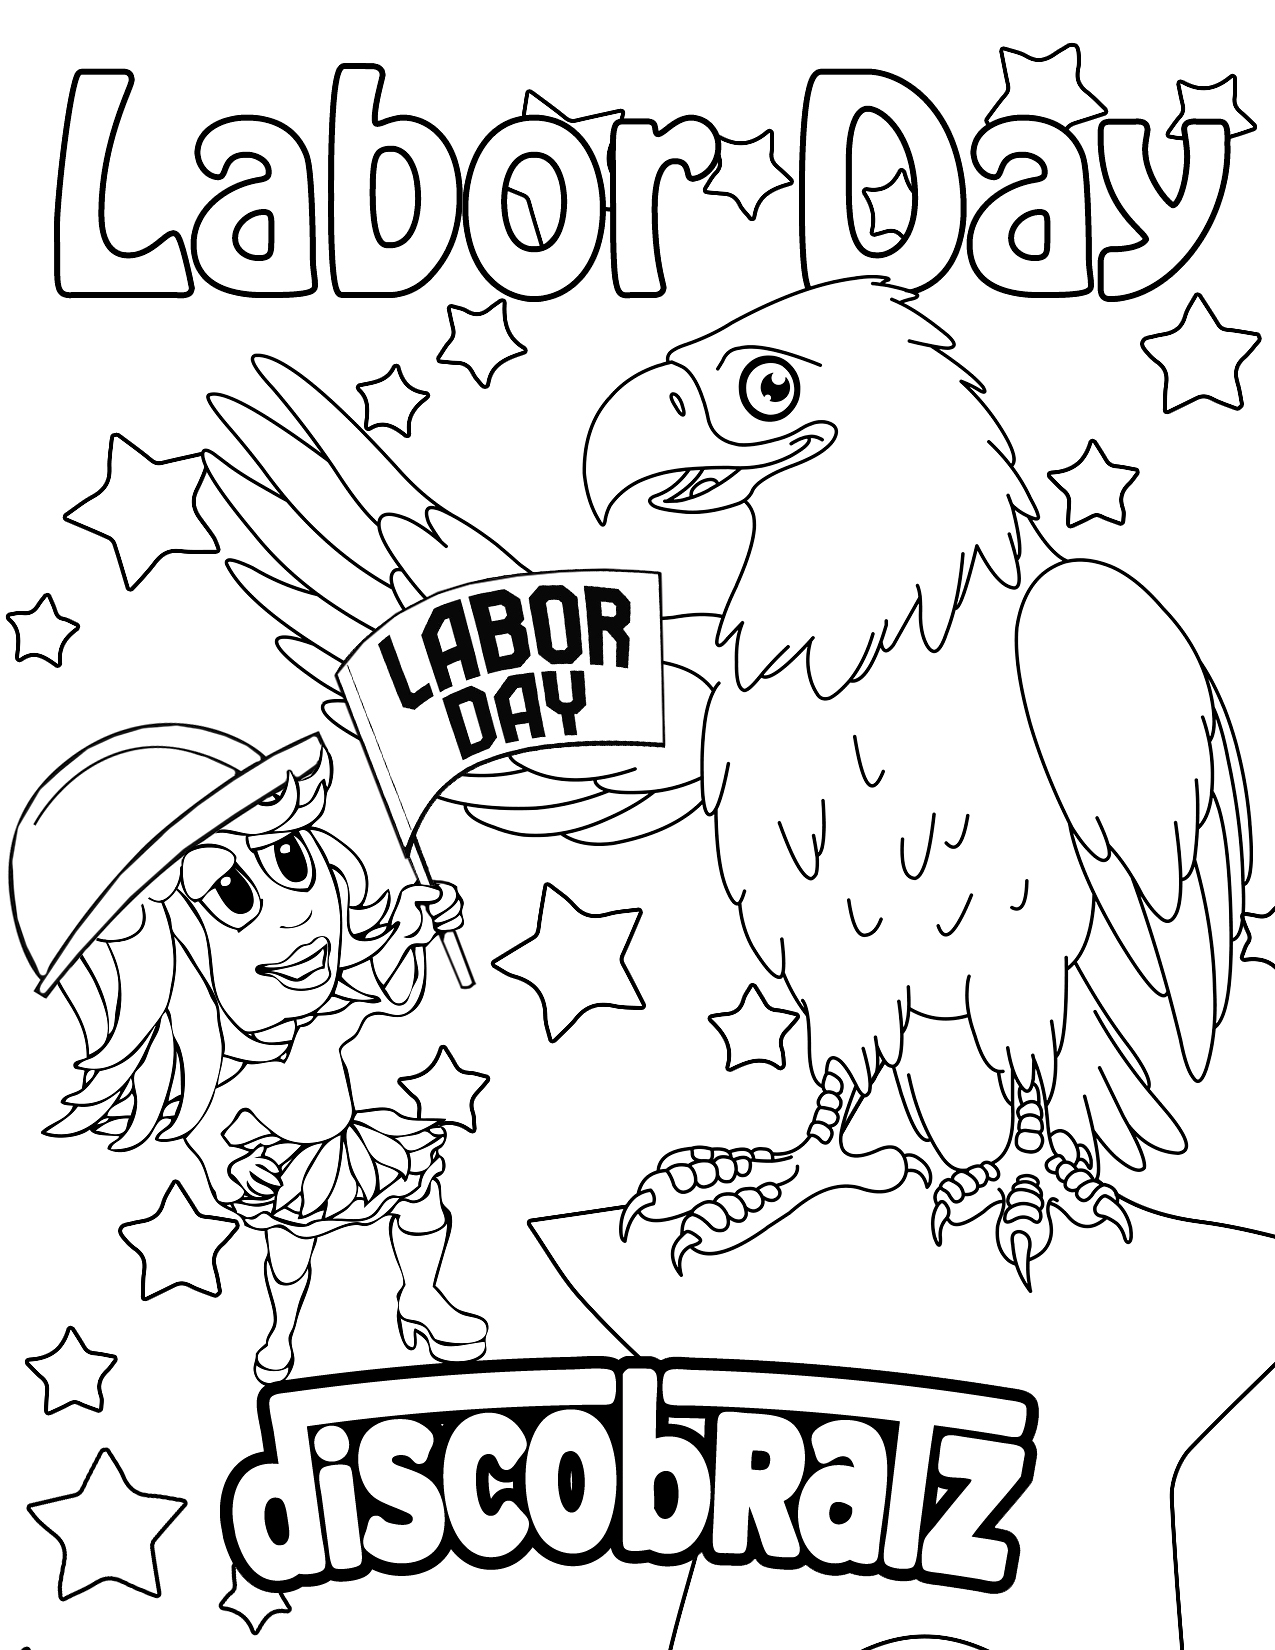 labor day coloring page discobratz celebrates the workers of the world with a page day coloring labor